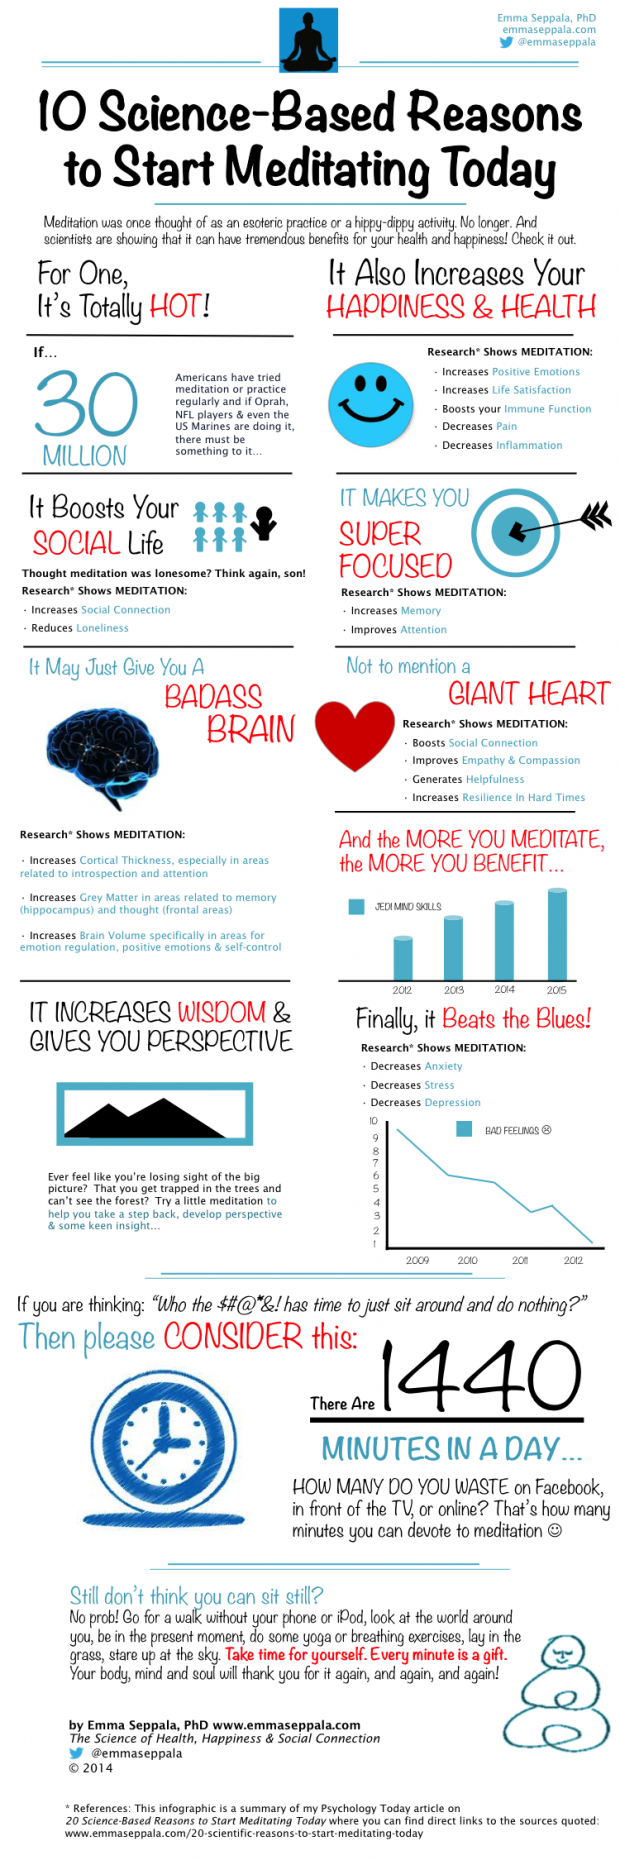 10-Science-Based-Reasons-To-Start-Meditating-Today-INFOGRAPHIC